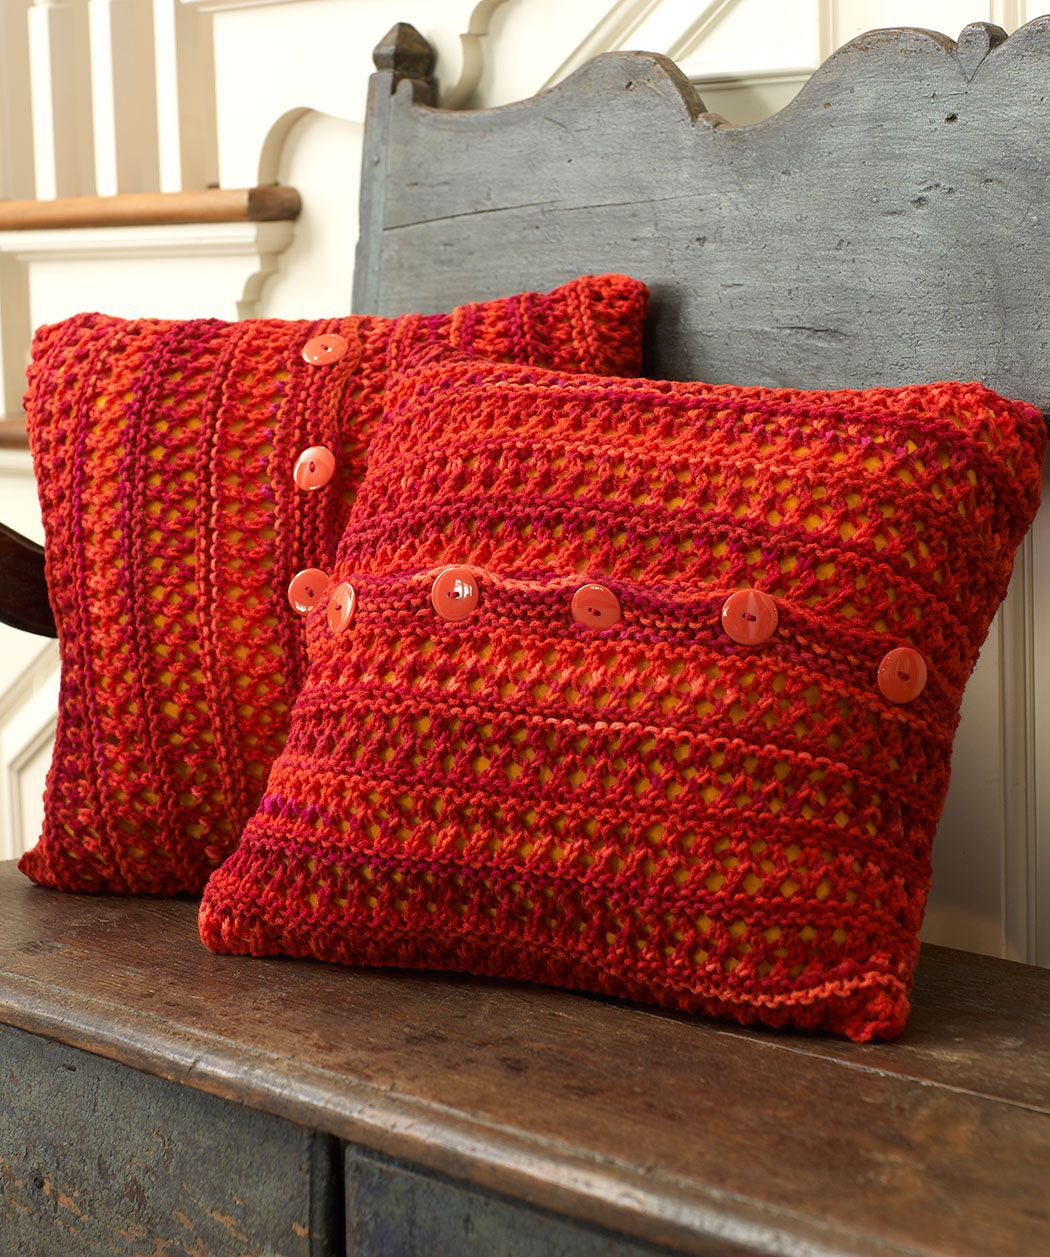 Button up chair pillow knitting pattern knit redheartyarns new button up chair pillow free knitting pattern from red heart yarns bankloansurffo Choice Image